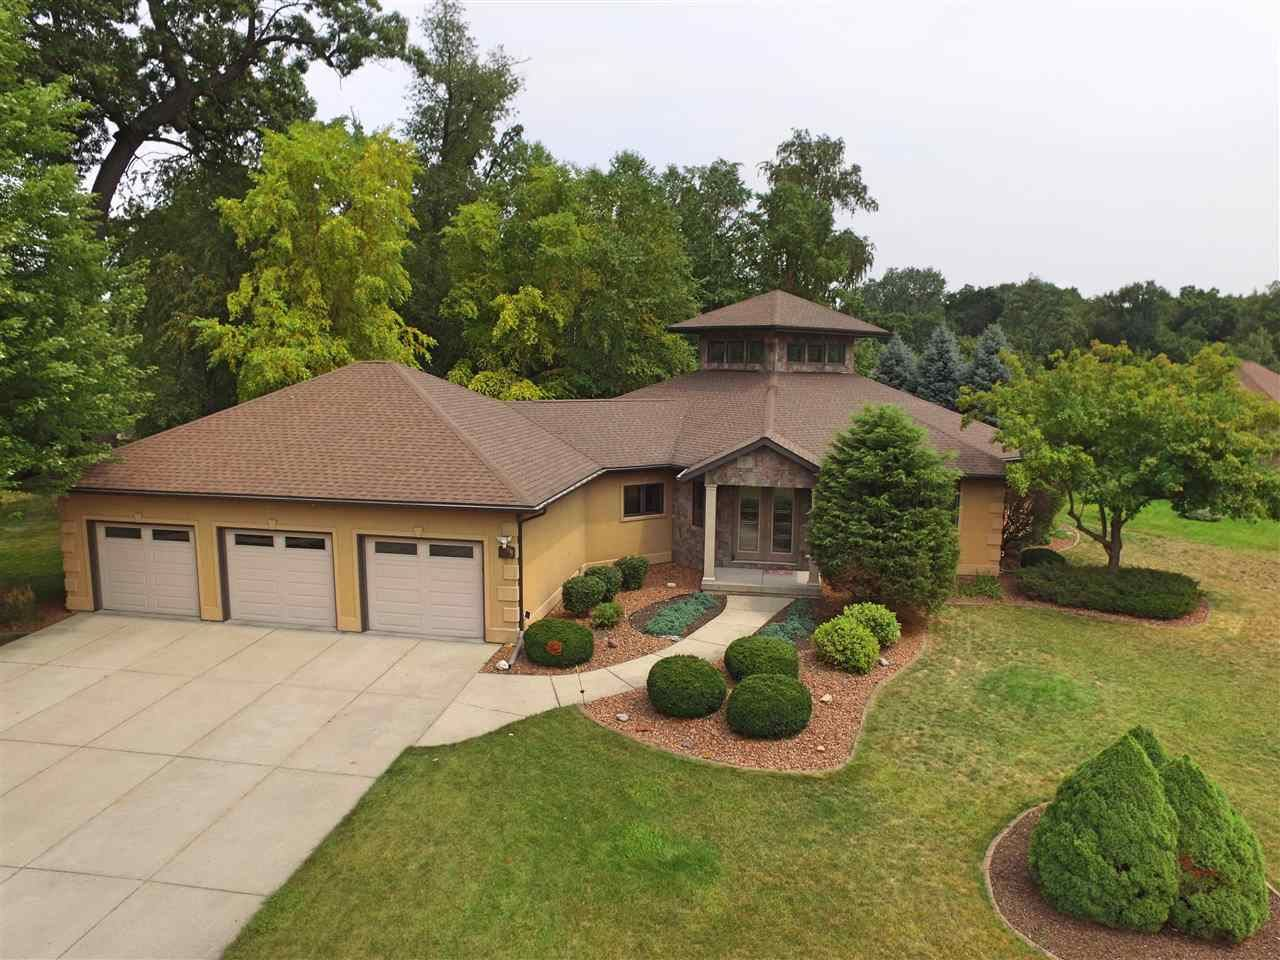 4104 N Wright Rd, Janesville, WI 53546 - #: 1919780